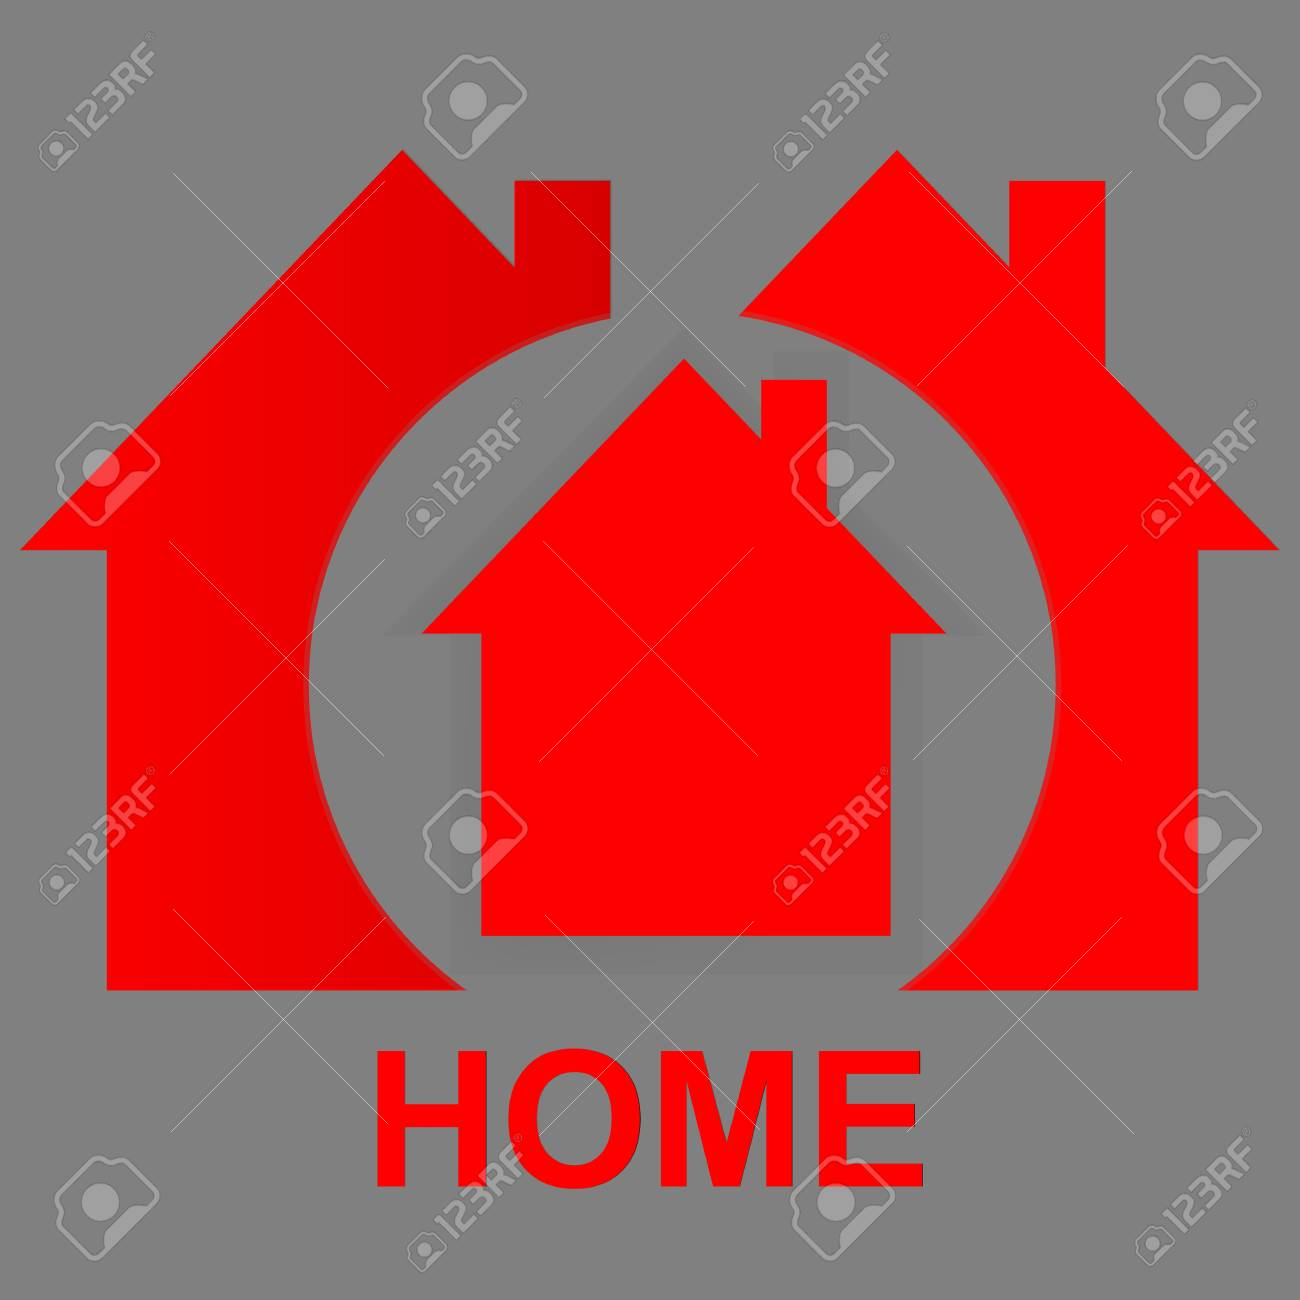 Houses Stock Vector - 16168779